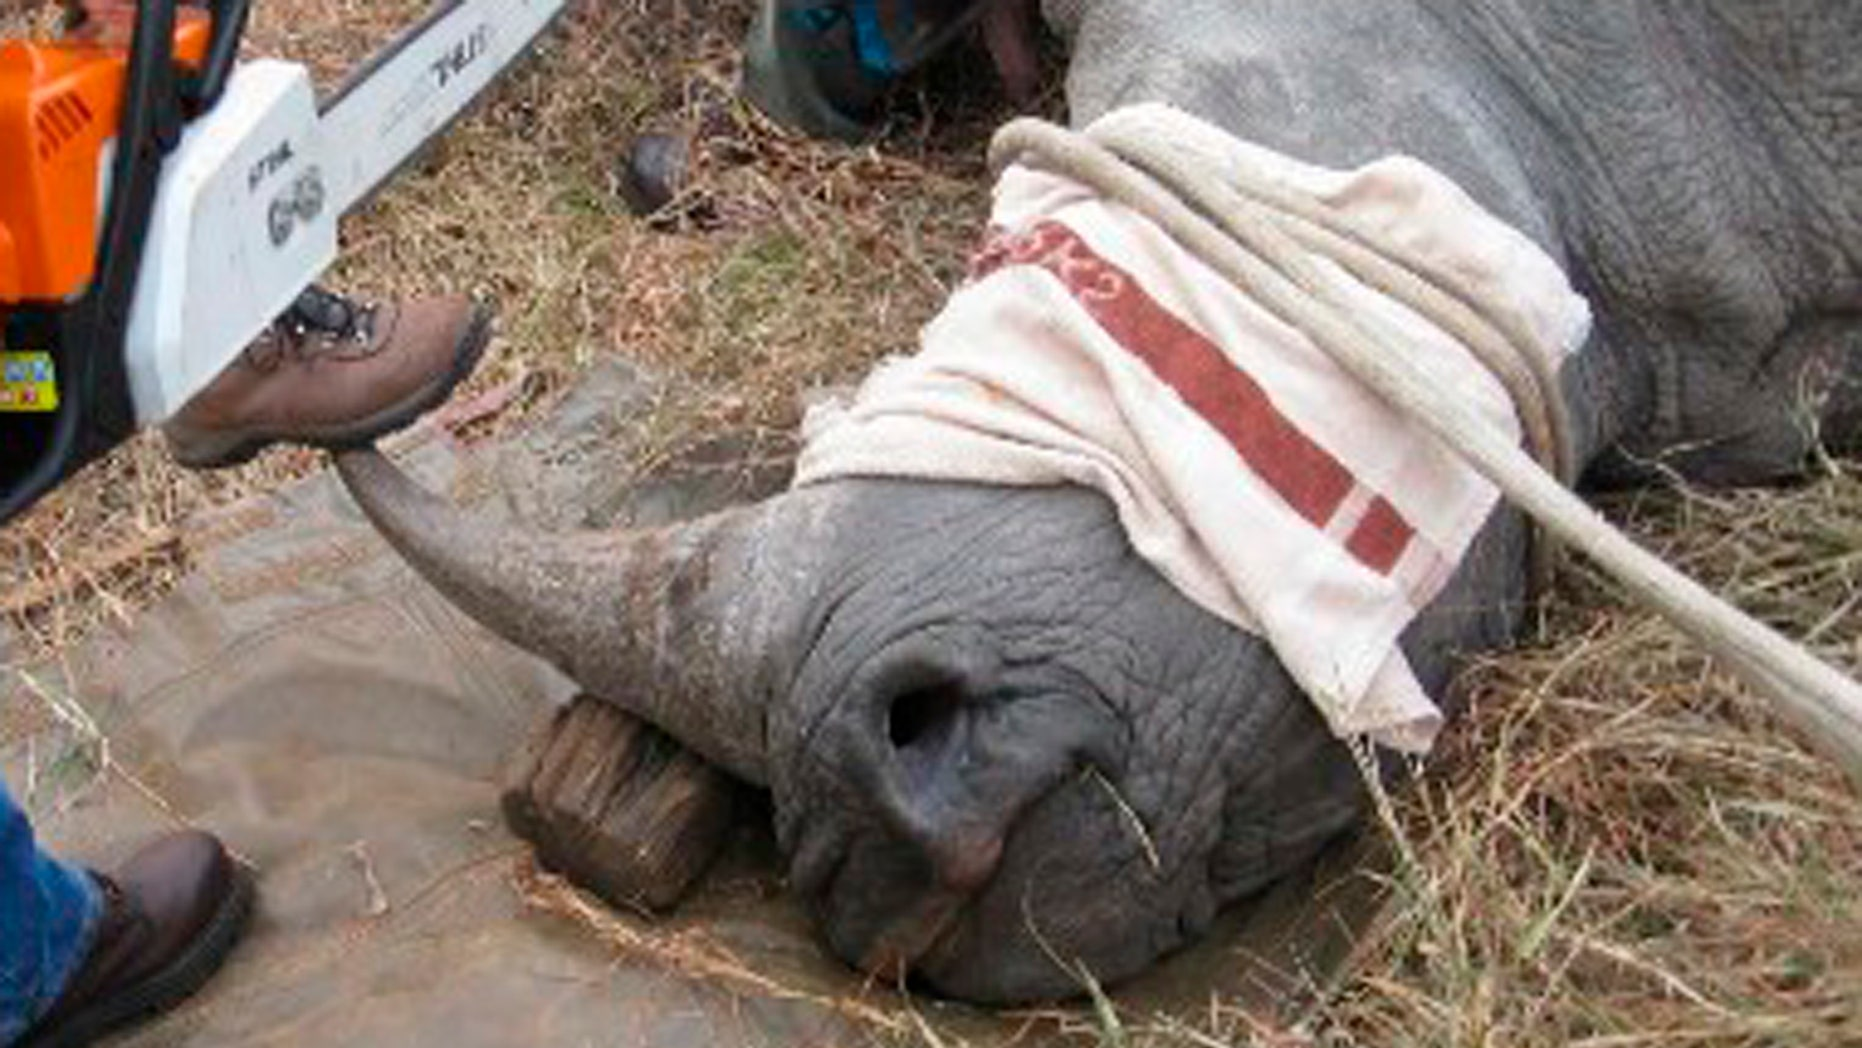 f344ef0a7a2b Fueled by demand from Asia, rhino poaching hits record across Africa ...